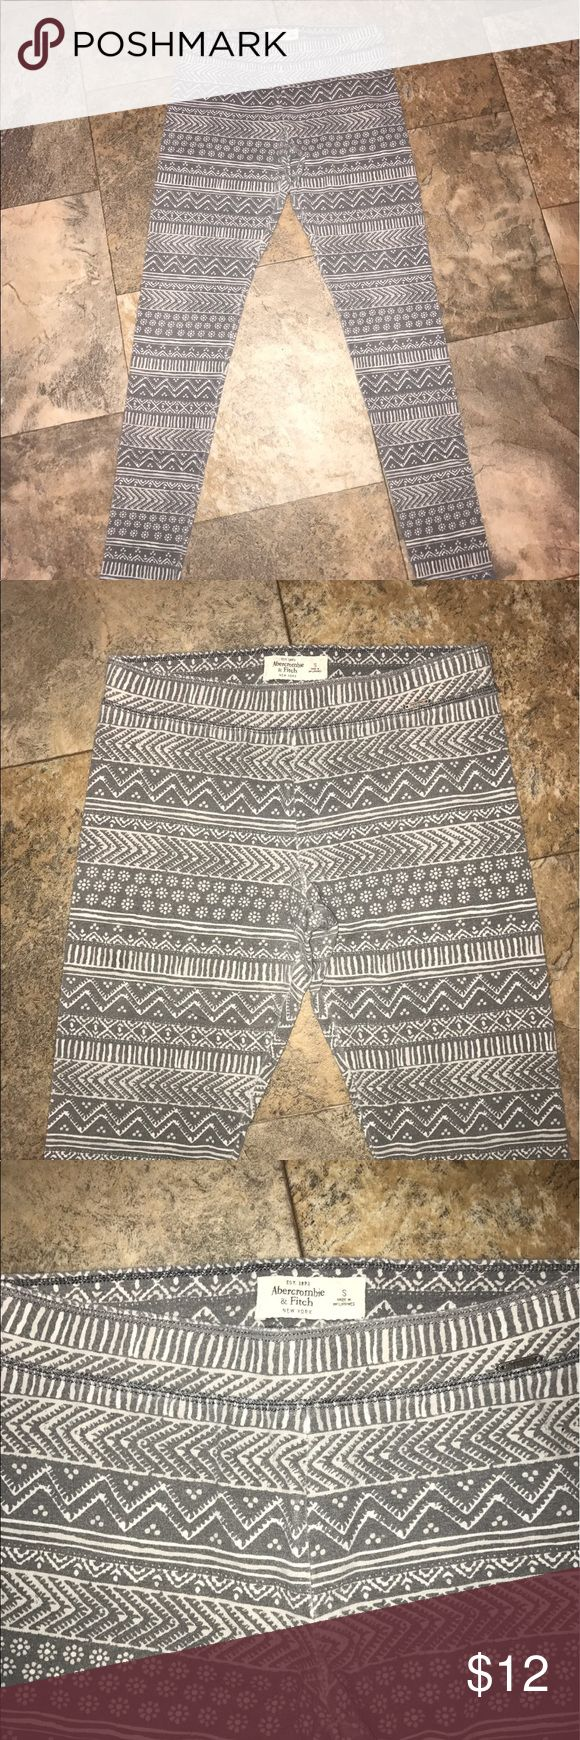 Abercrombie and fitch leggings EUC size small Abercrombie and fitch leggings EUC size small approx measurements 28 inch inseam Abercrombie & Fitch Pants Leggings